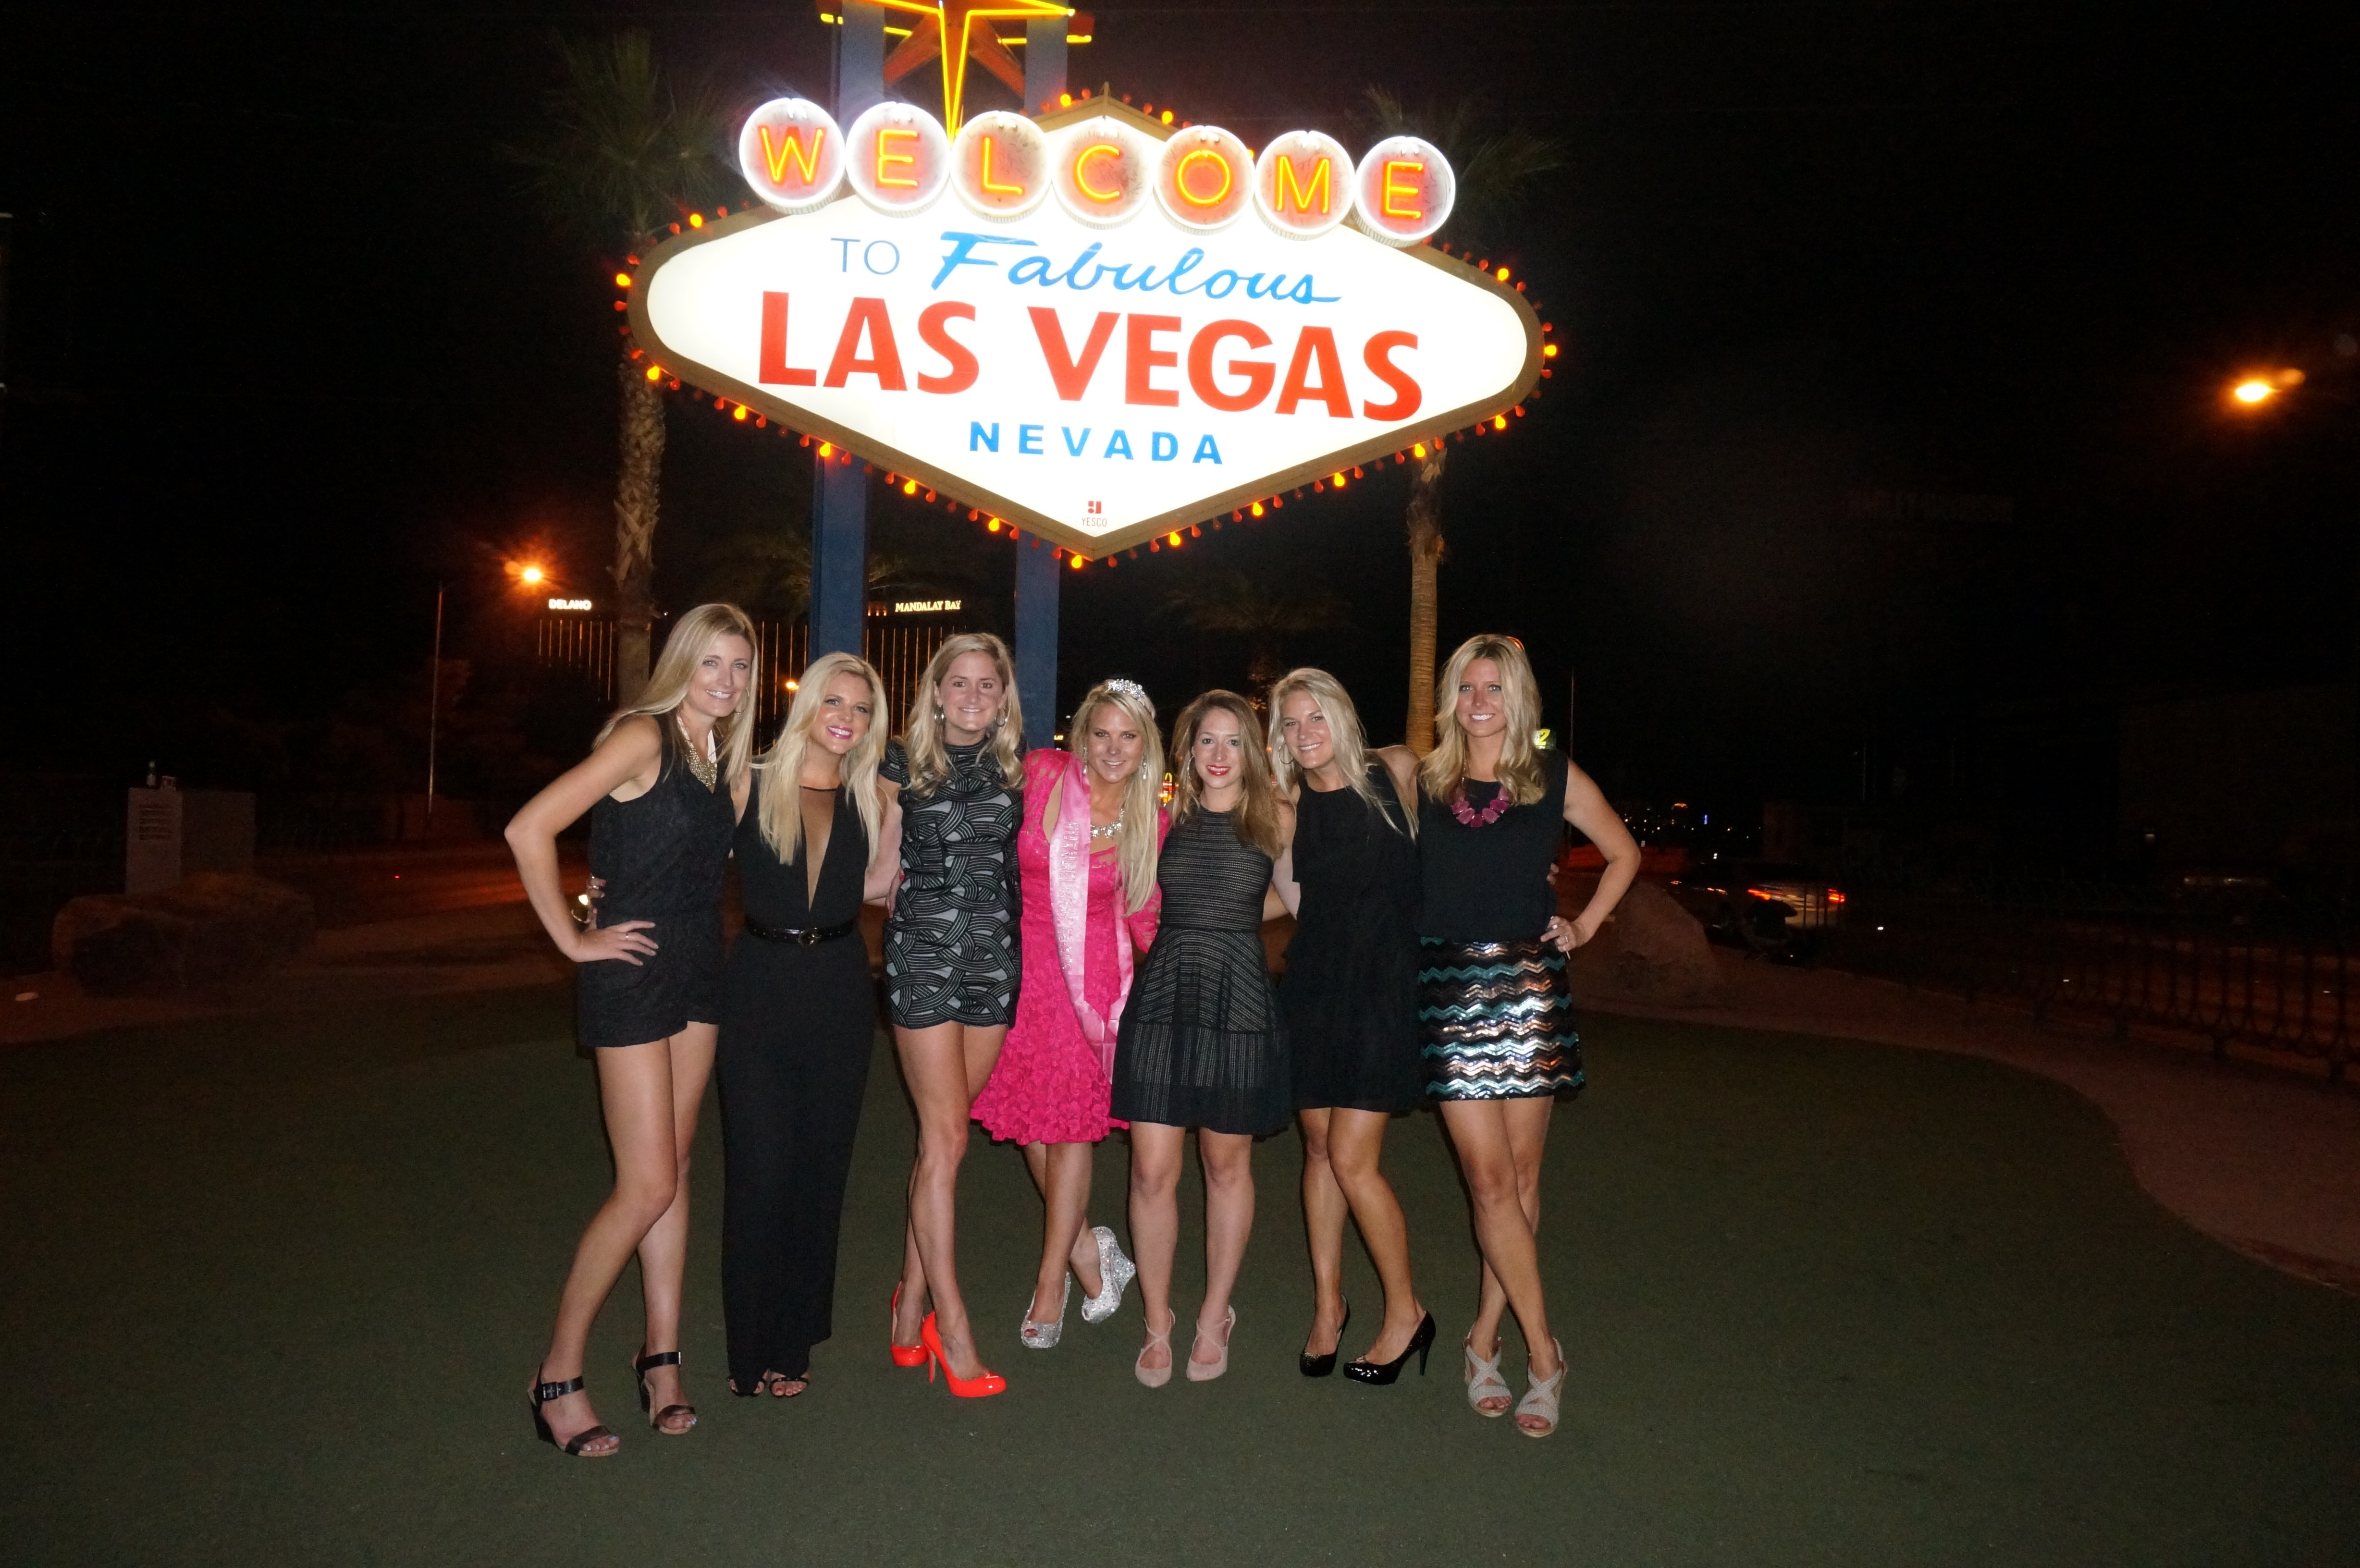 Wear to what night out in vegas